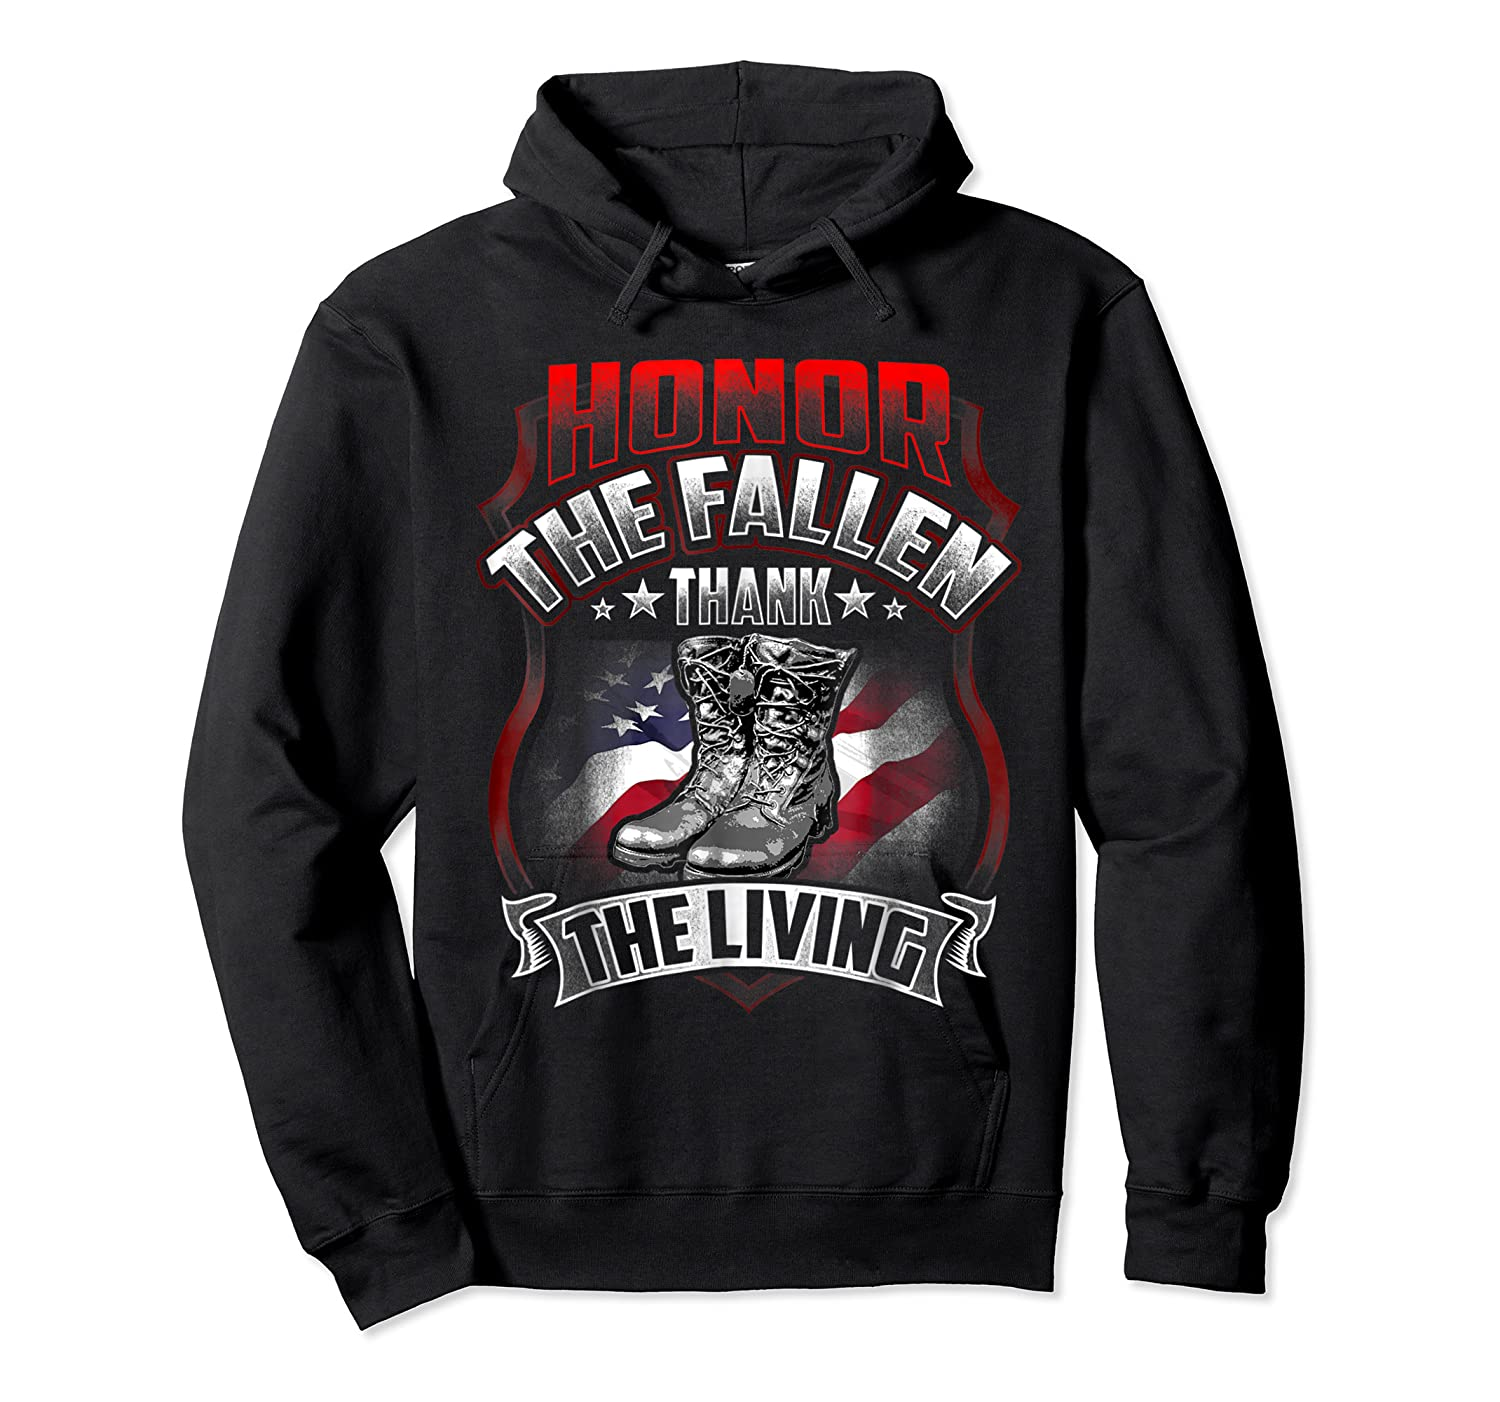 Memorial Day Honor The Fallen Thank The Living Veteran Shirts Unisex Pullover Hoodie